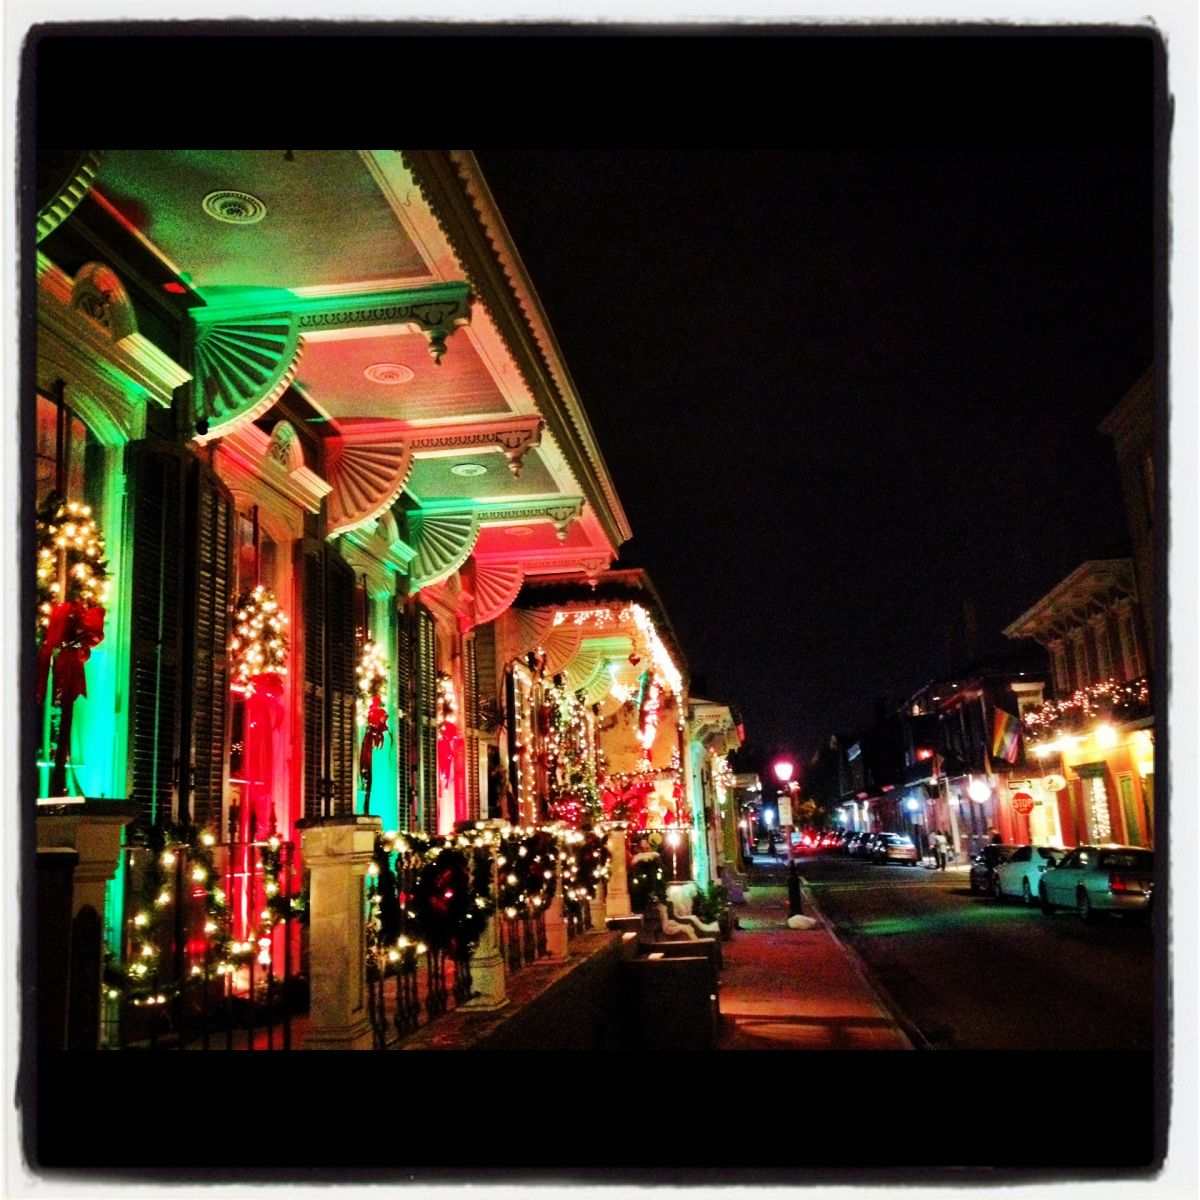 Shop Away In The Vieux Carre Christmas Tree Lighting